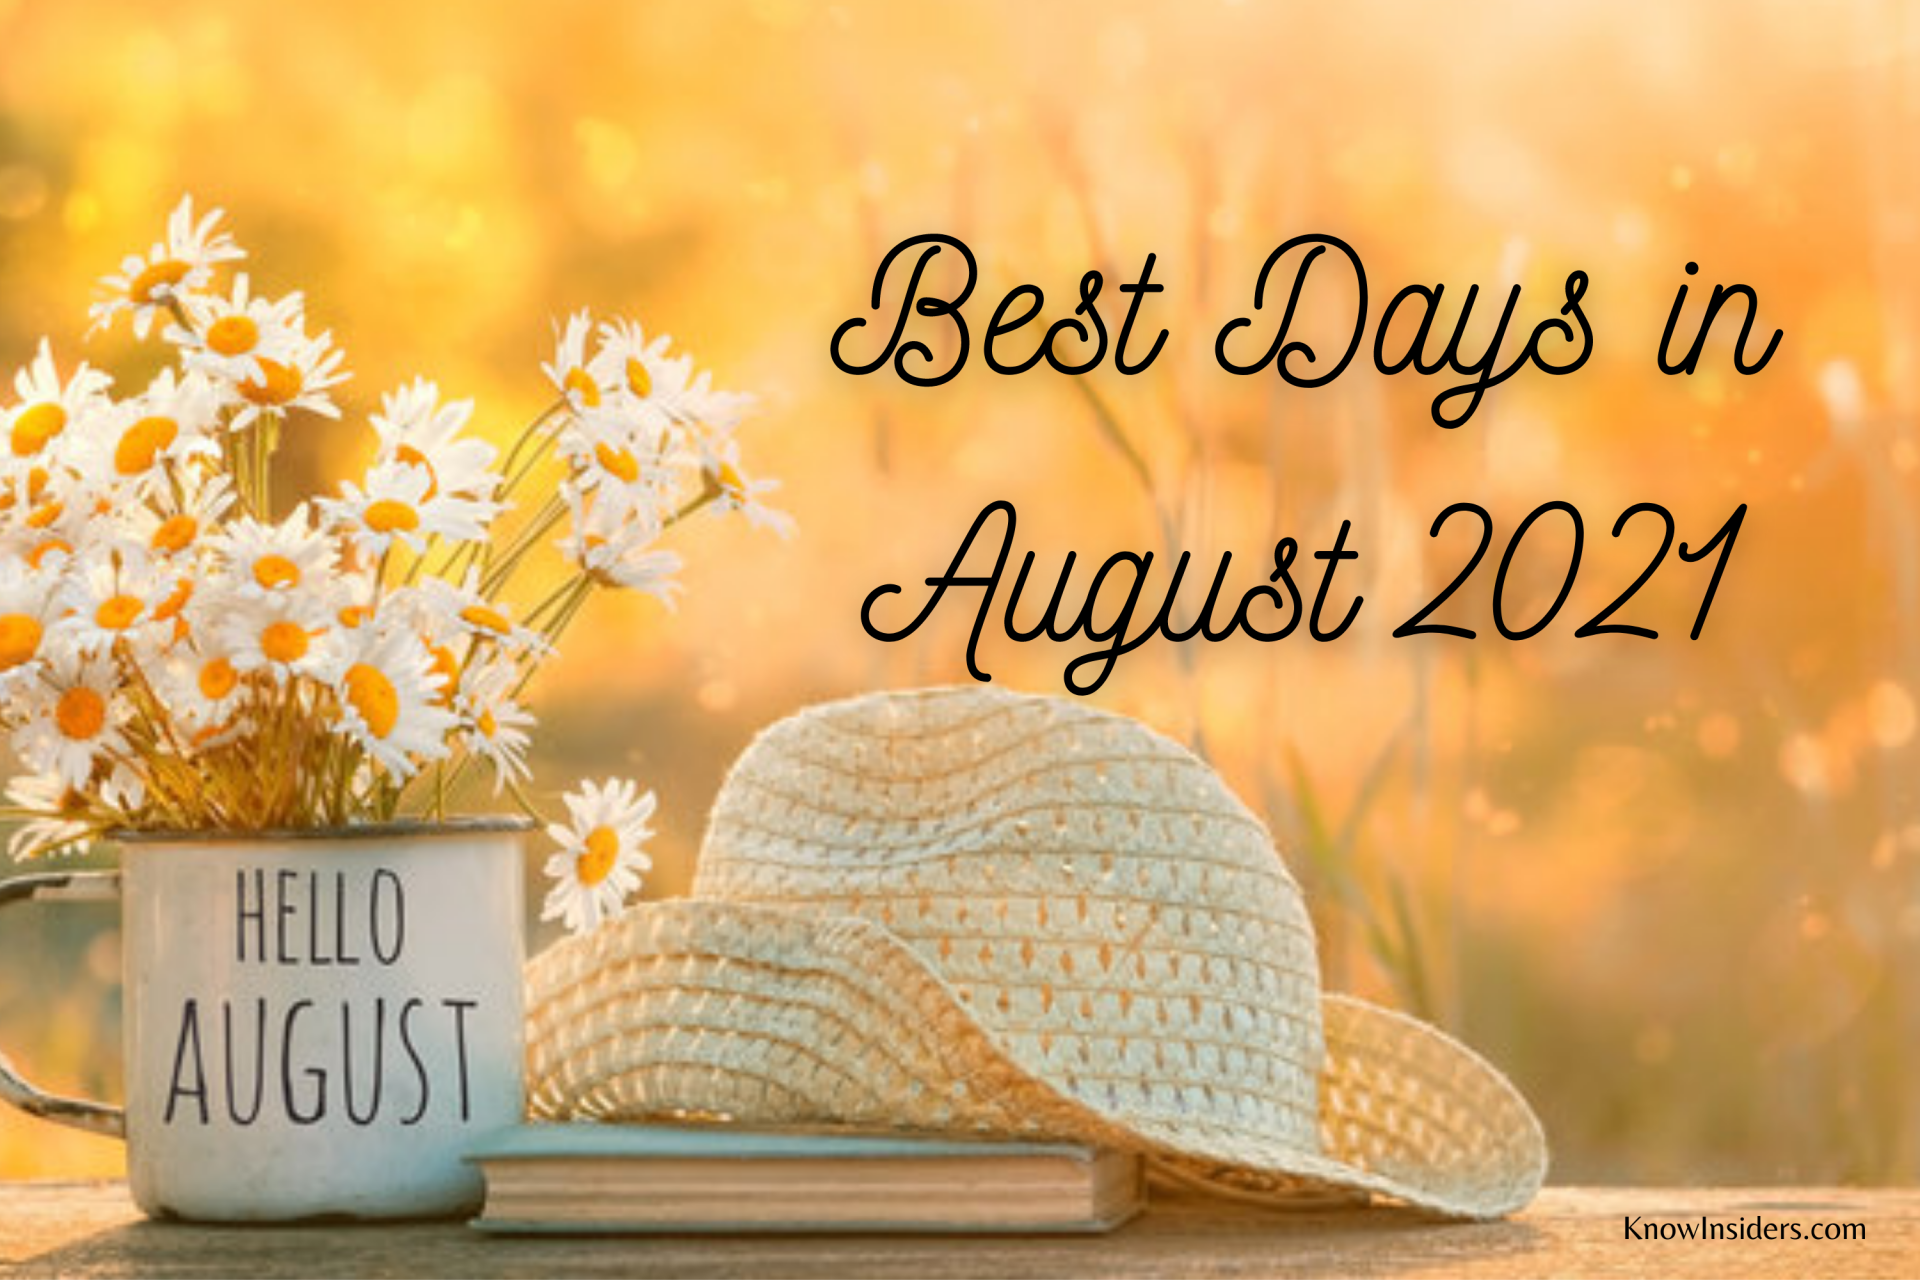 The Best Days in August by Activities